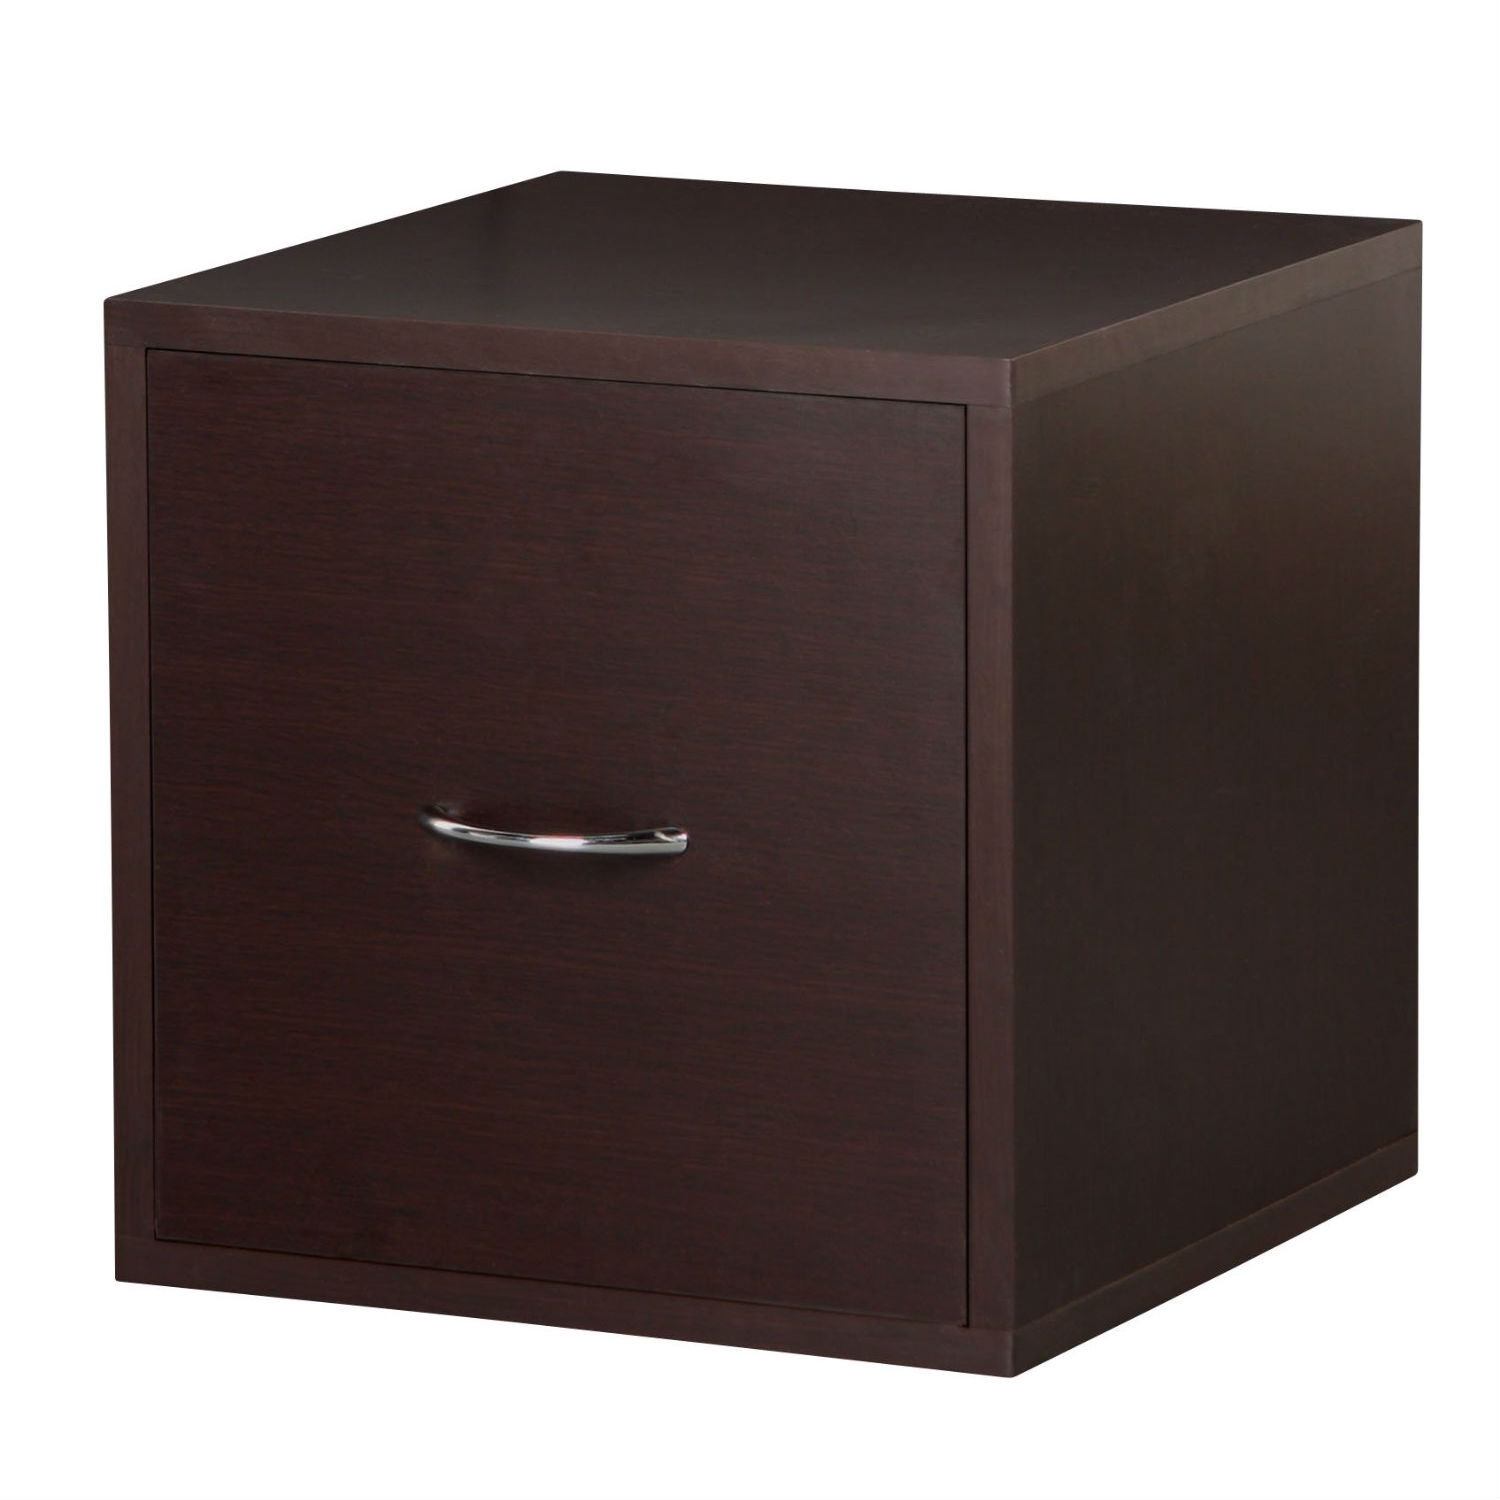 Solid Wood Frame Modular File Cabinet Storage Cube In Espresso Fastfurnishings